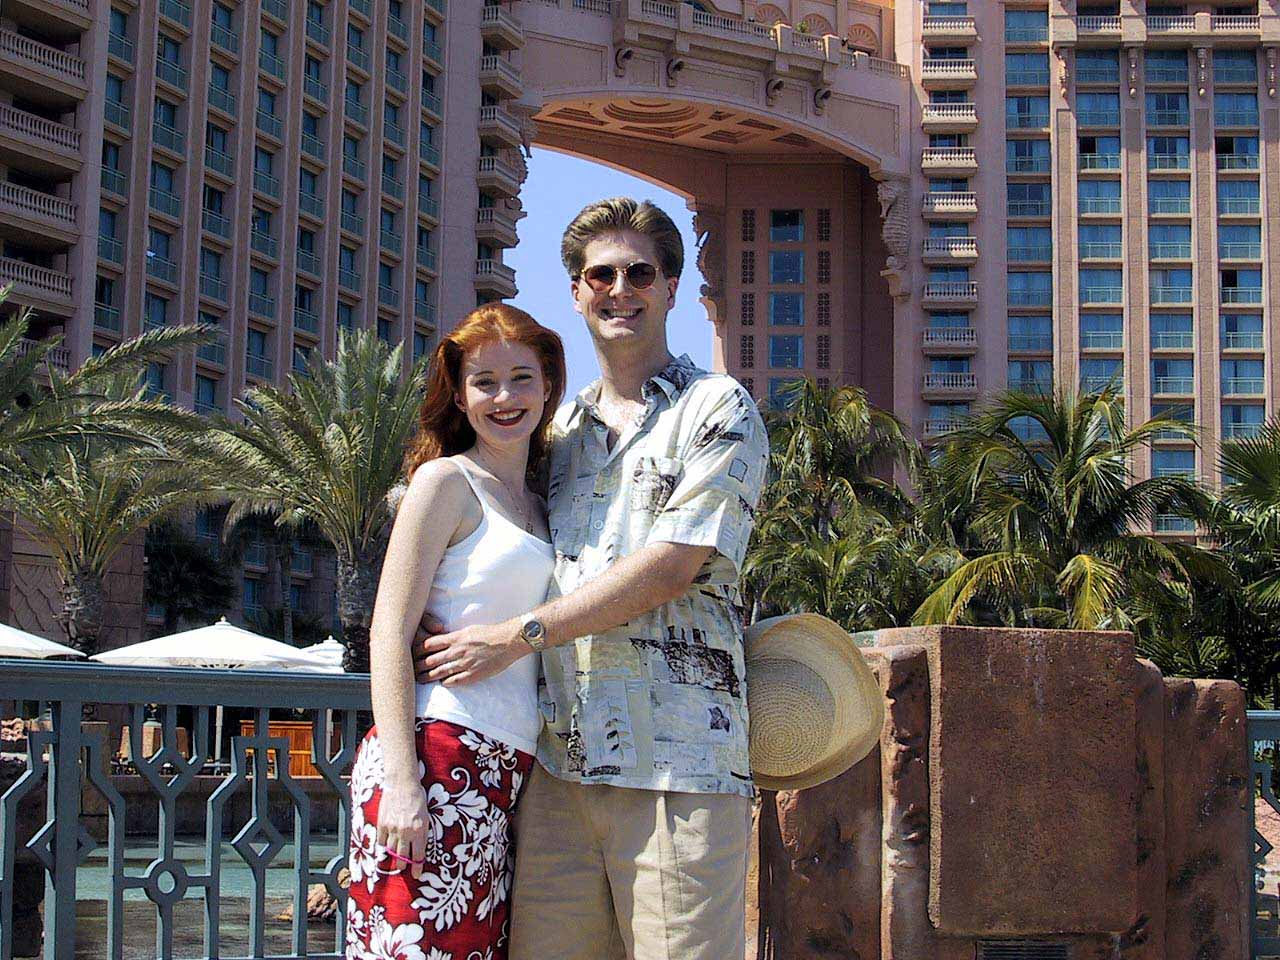 Outside the Atlantis Resort